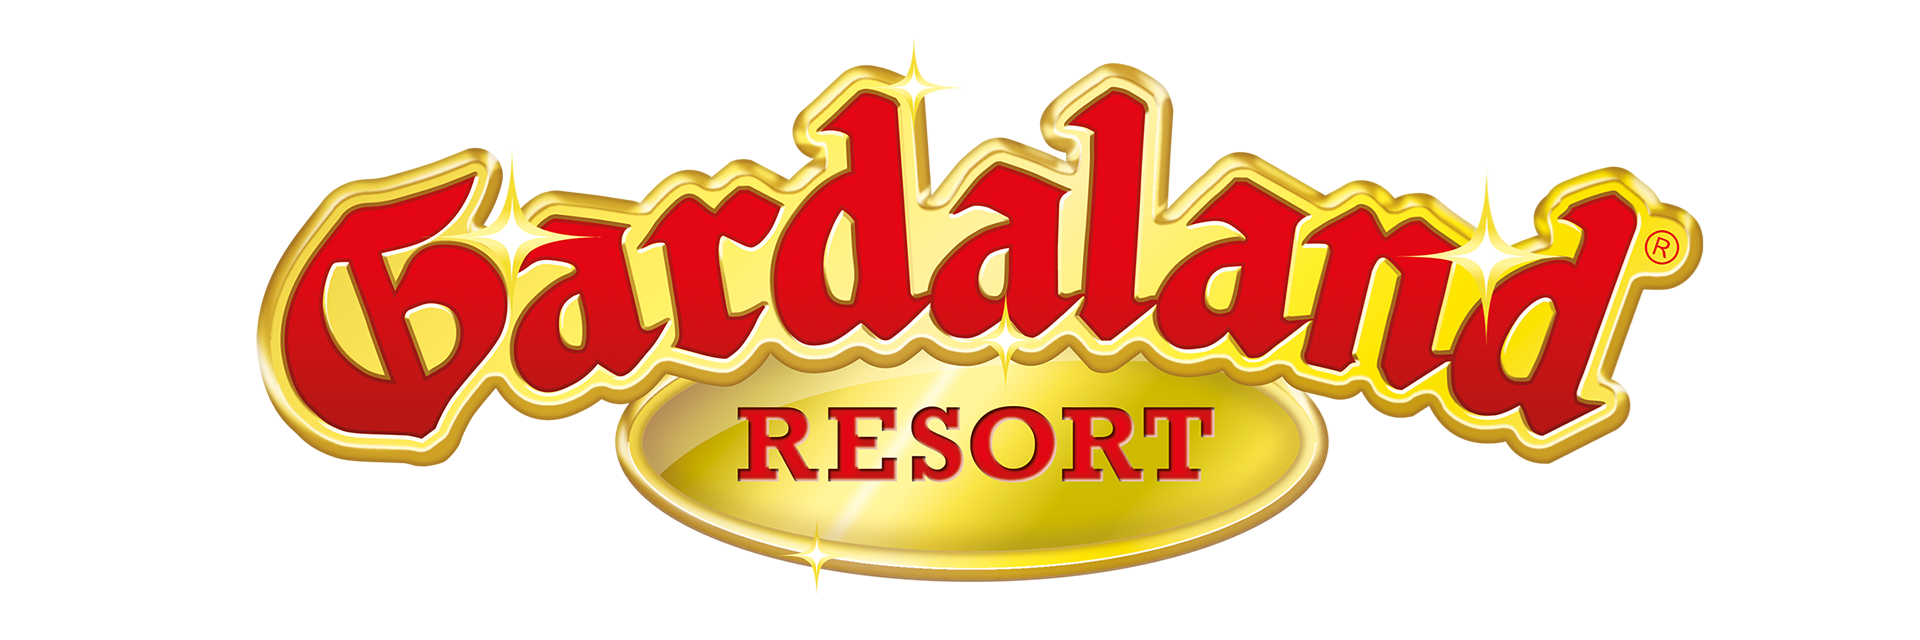 Logogardalandresort3 1